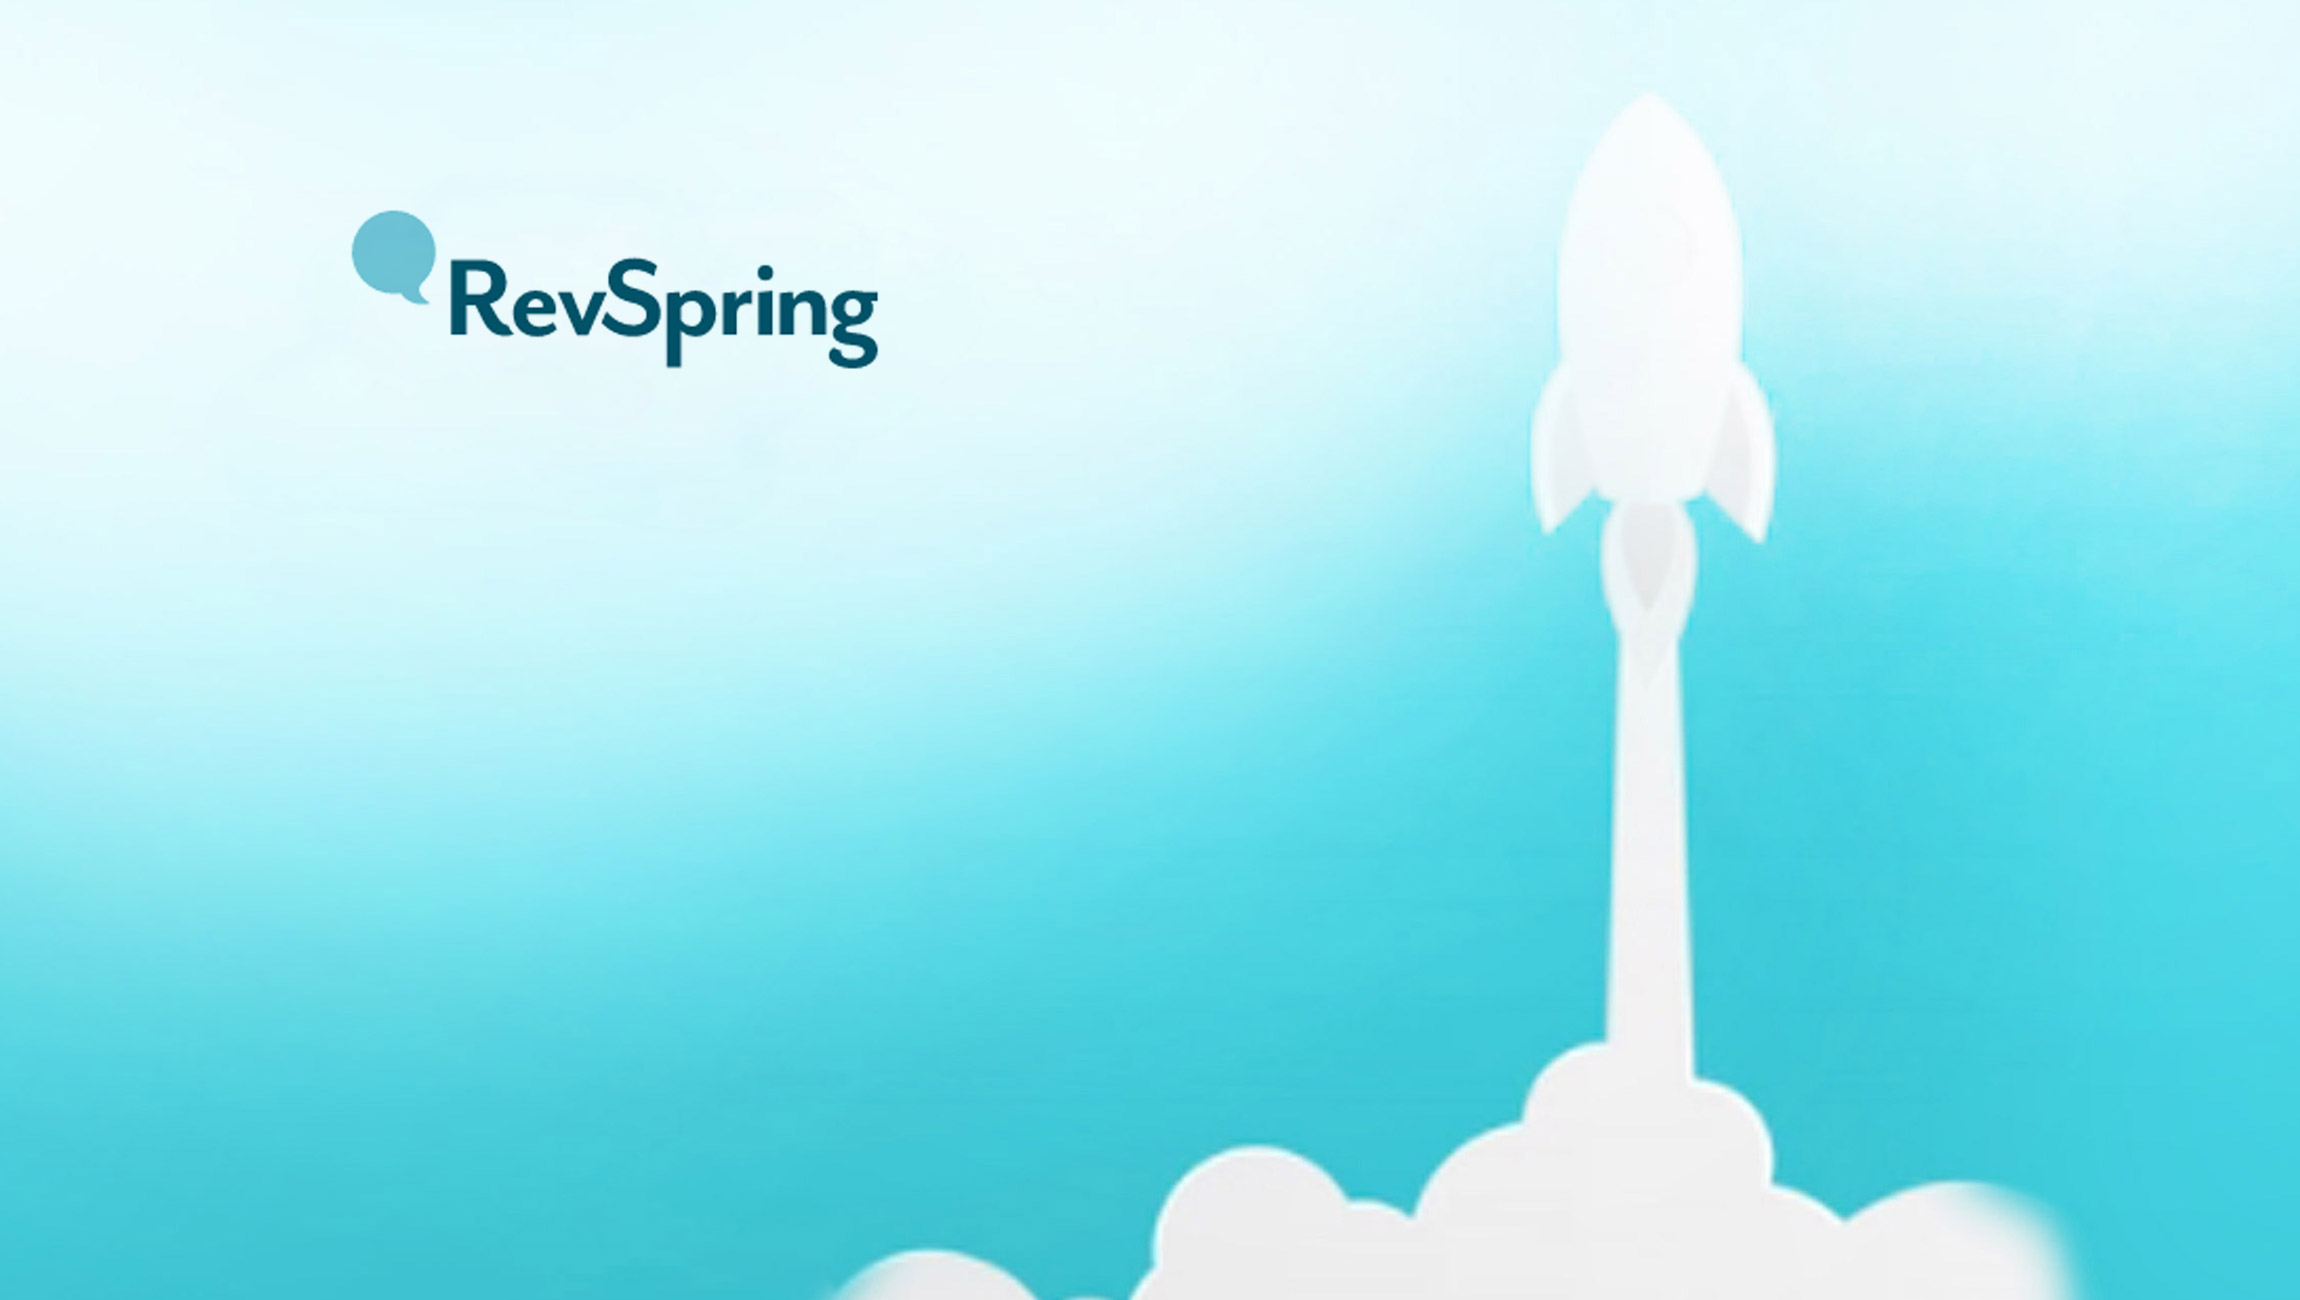 RevSpring Launches Composer™, a New Tool that Brings Ease and Convenience to Document Composition